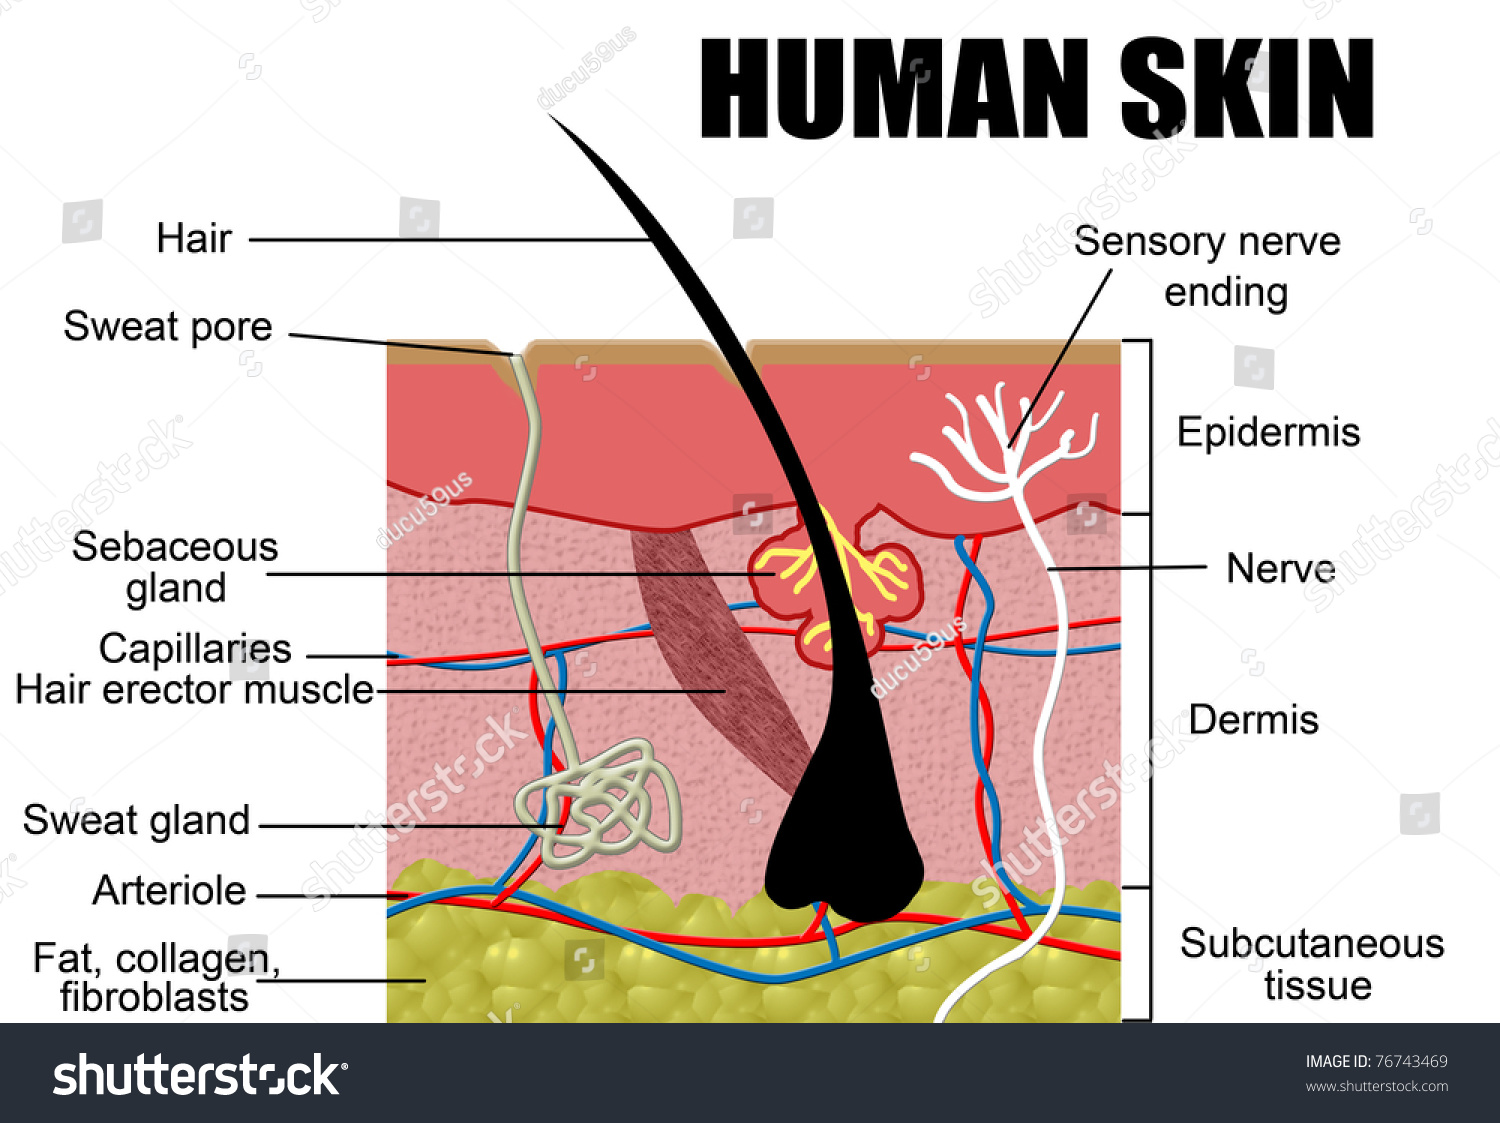 Human Skin Cross-Section, Vector Illustration - Useful For ...